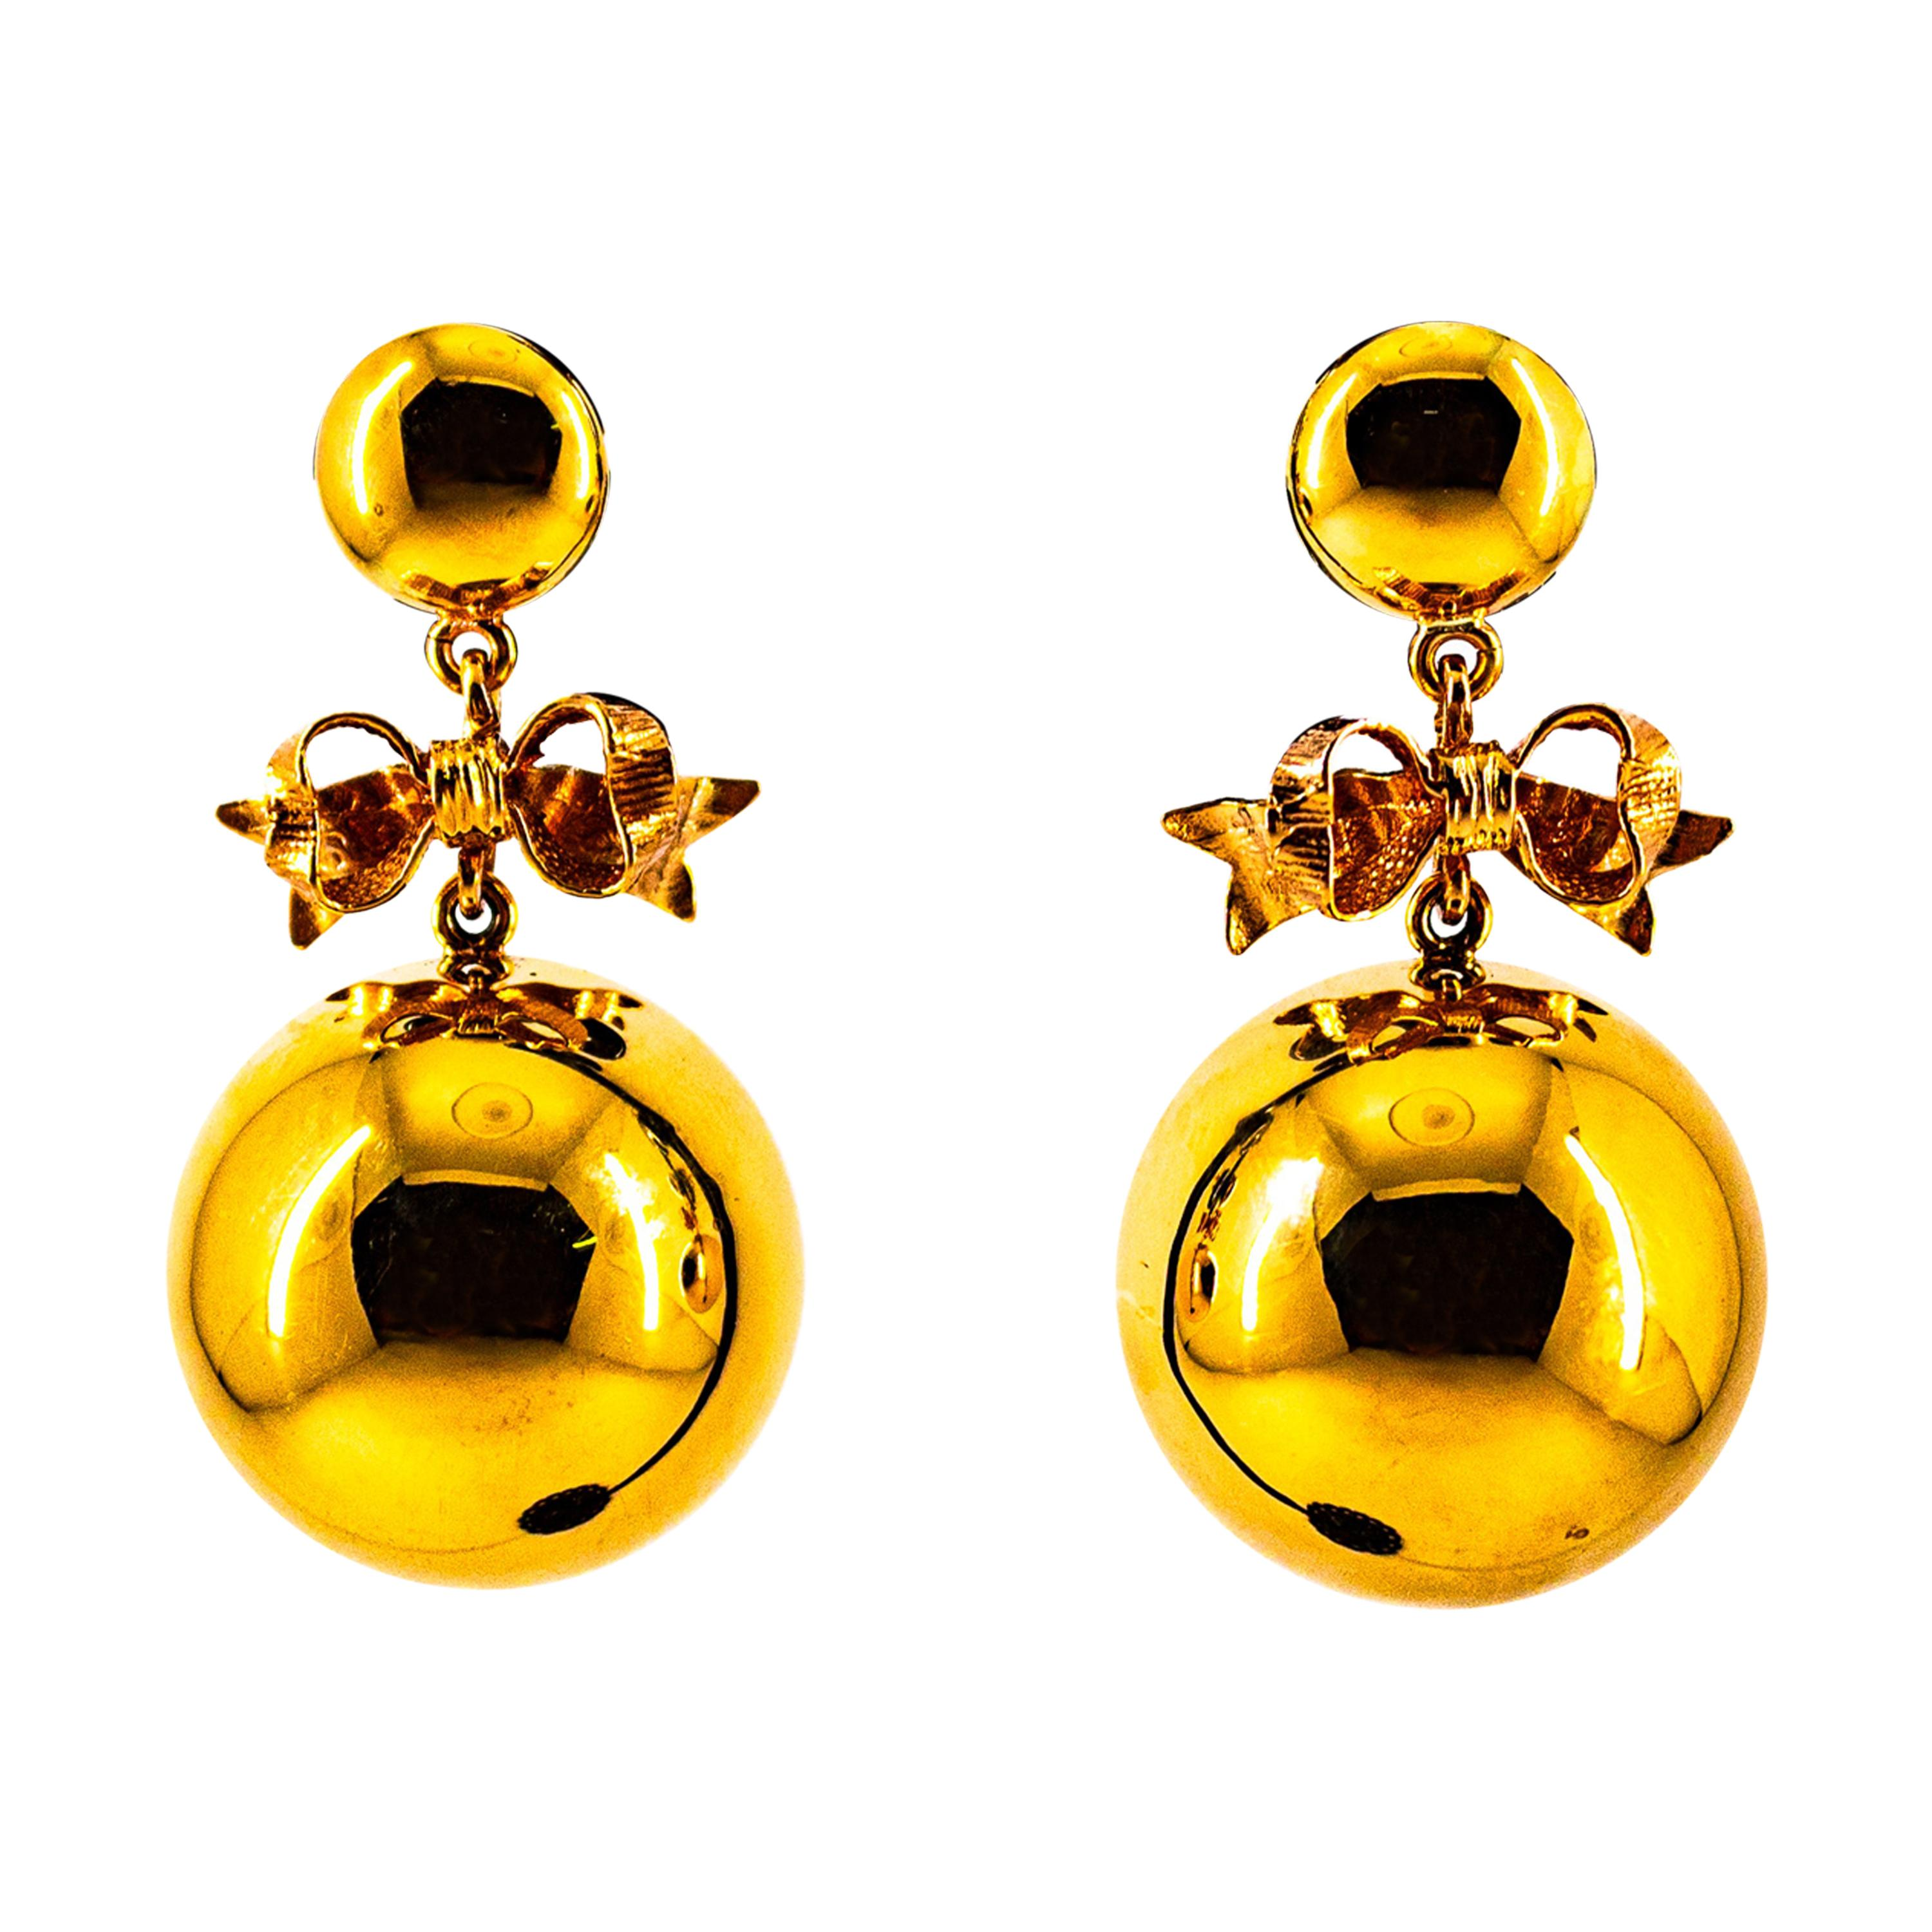 Art Deco Style Handcrafted Yellow Gold Dangle Stud Earrings